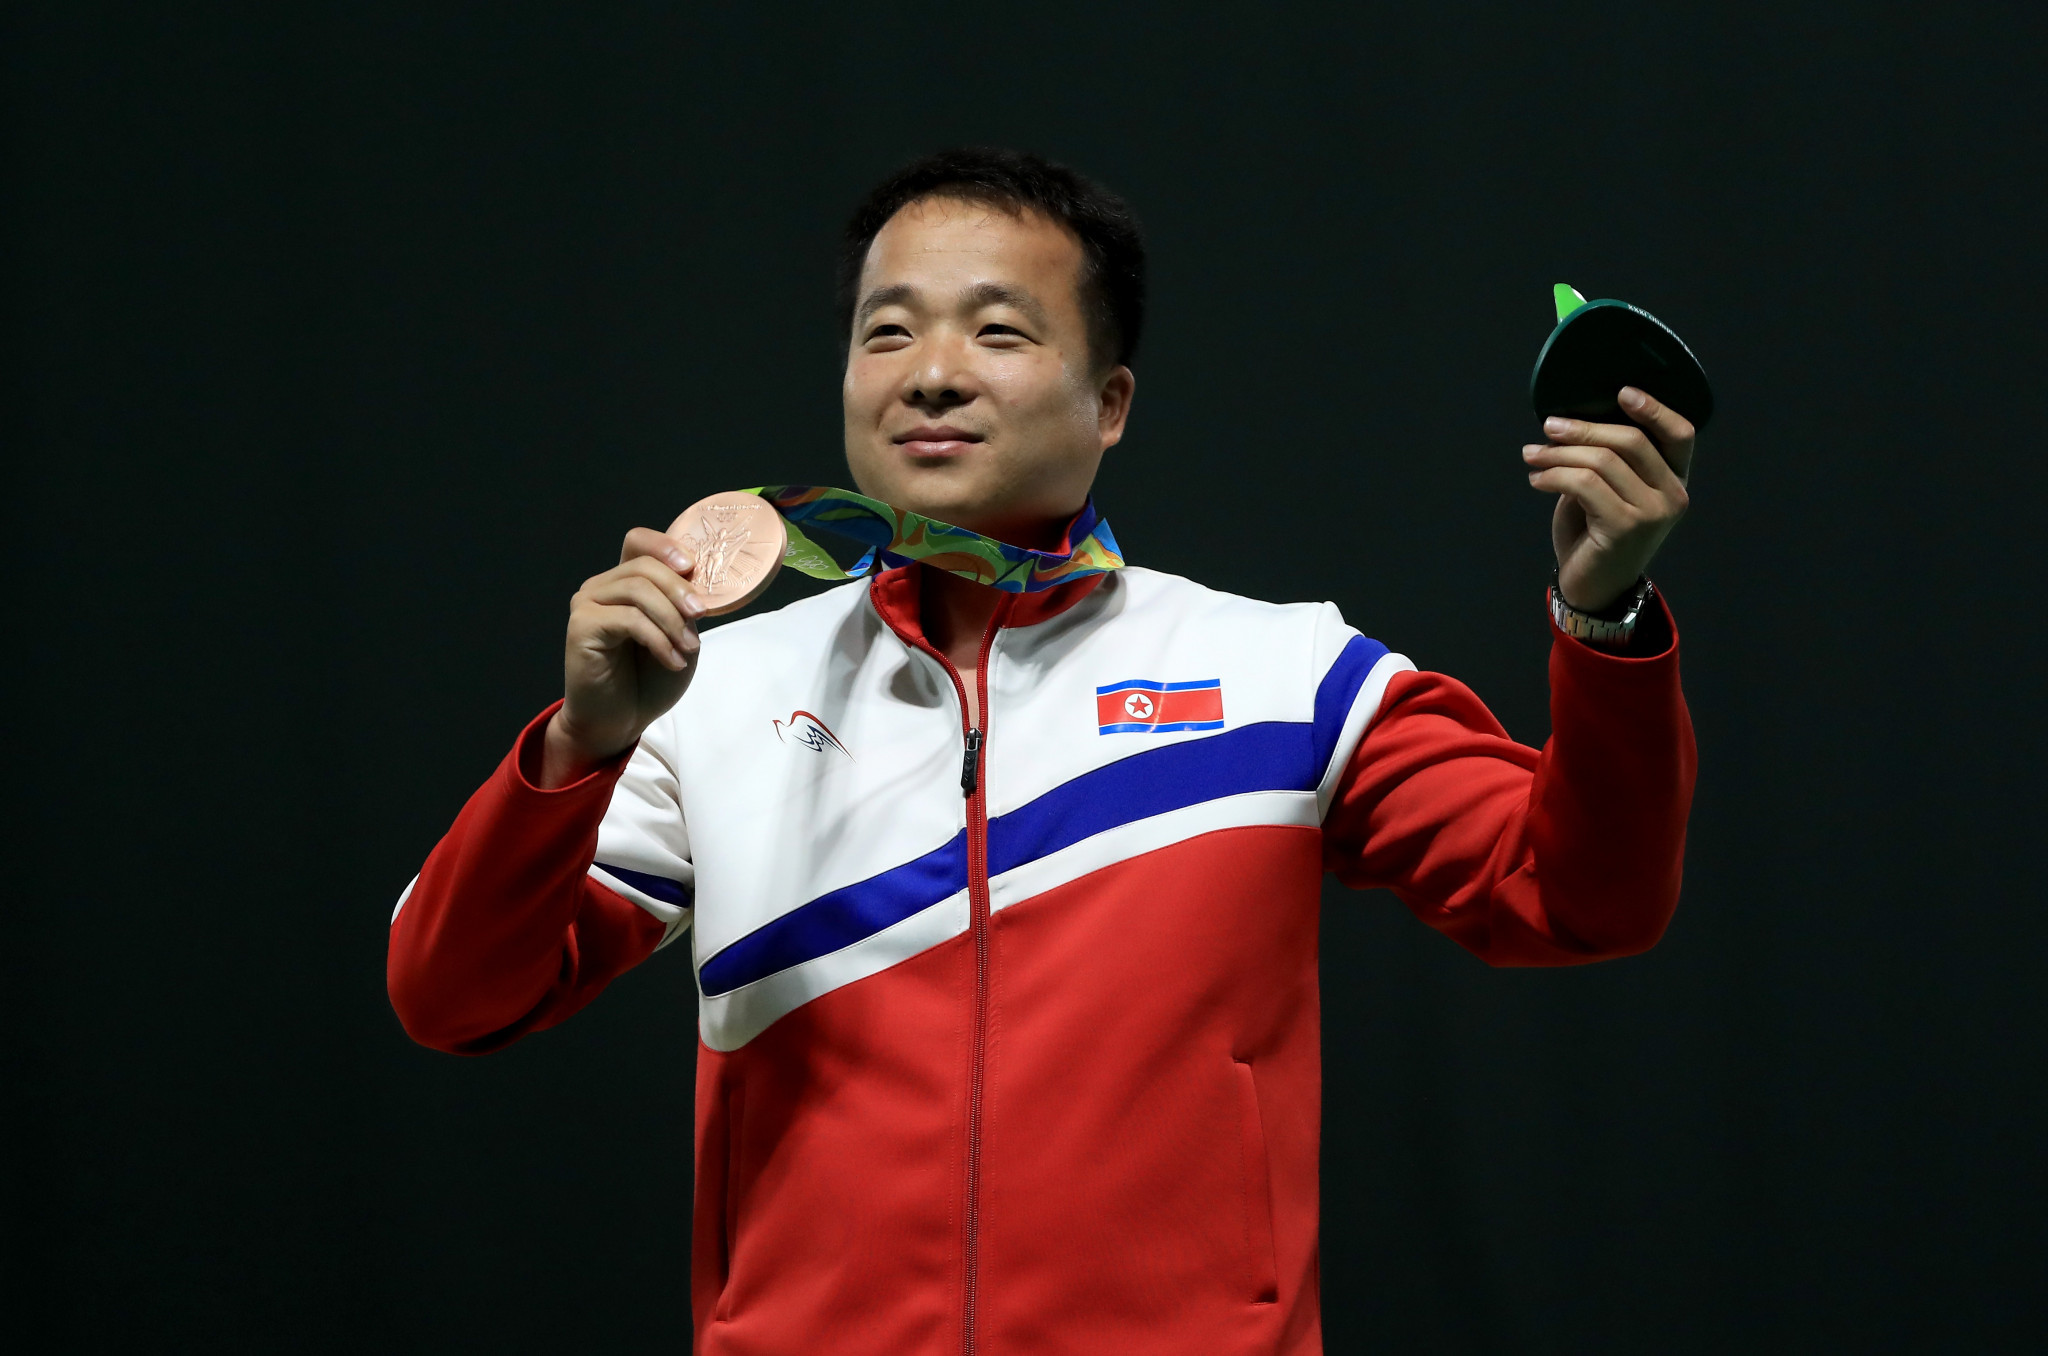 North Korean wins 10m air pistol title at Asian Shooting Championships